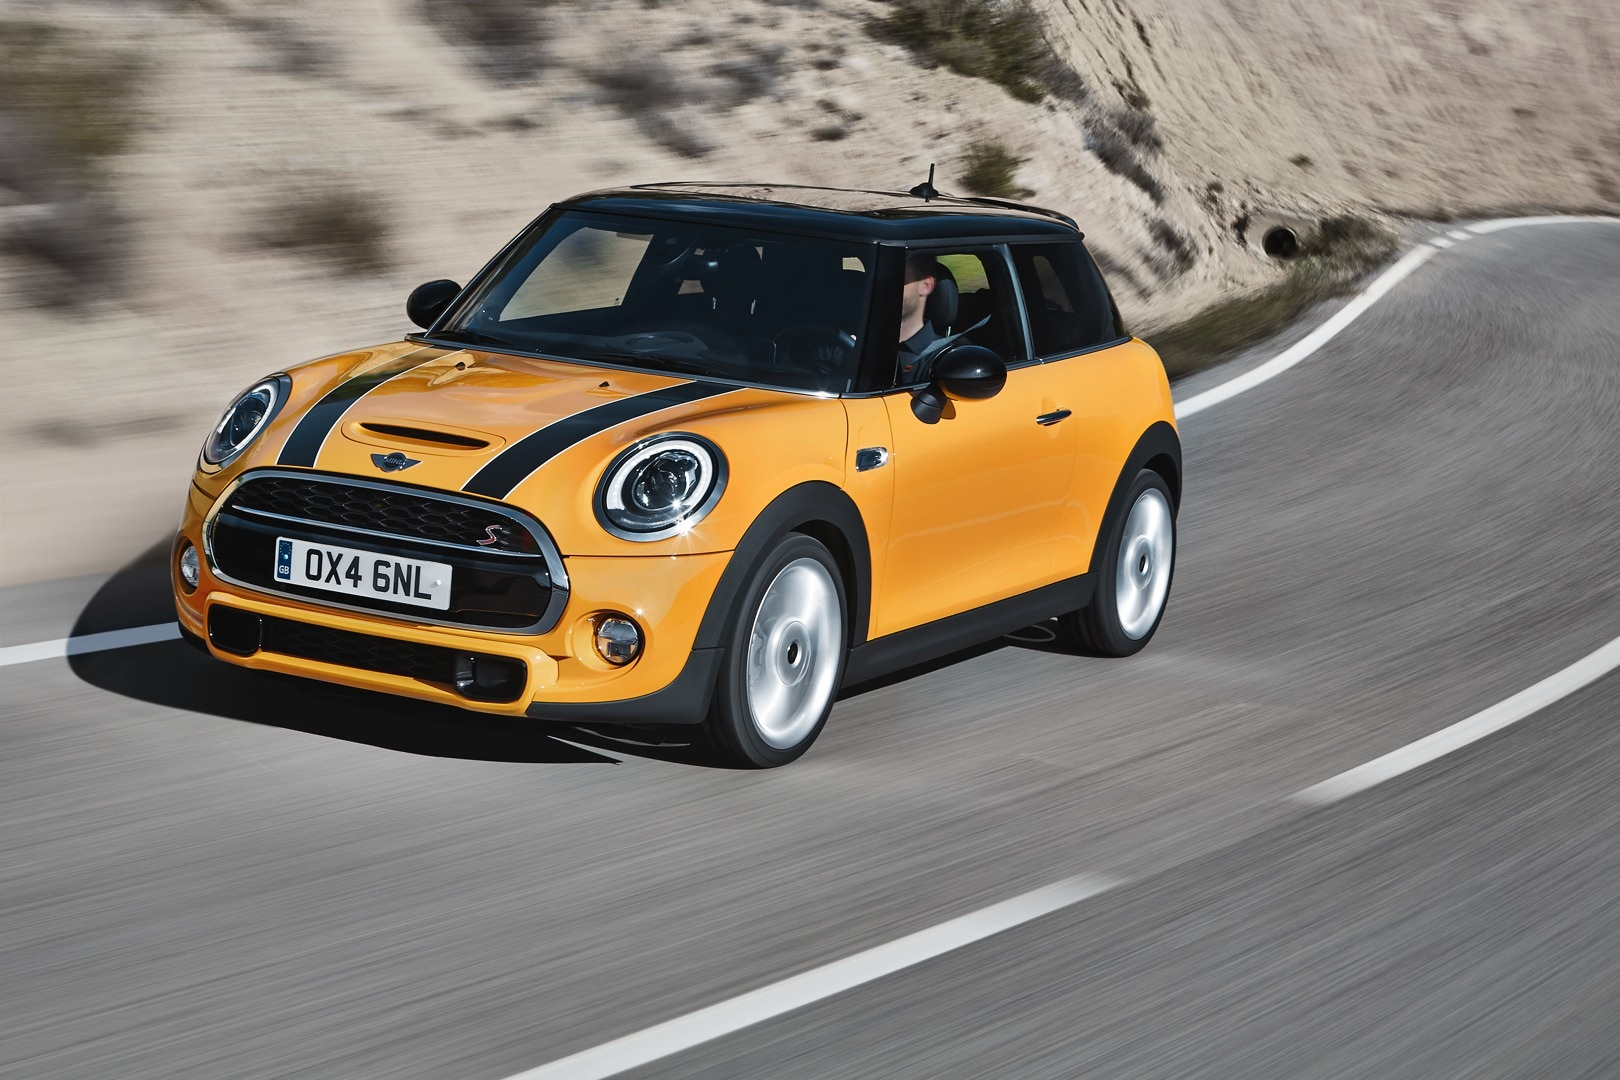 MINI Cooper S: One of the Most Wanted Cars of 2014 ...